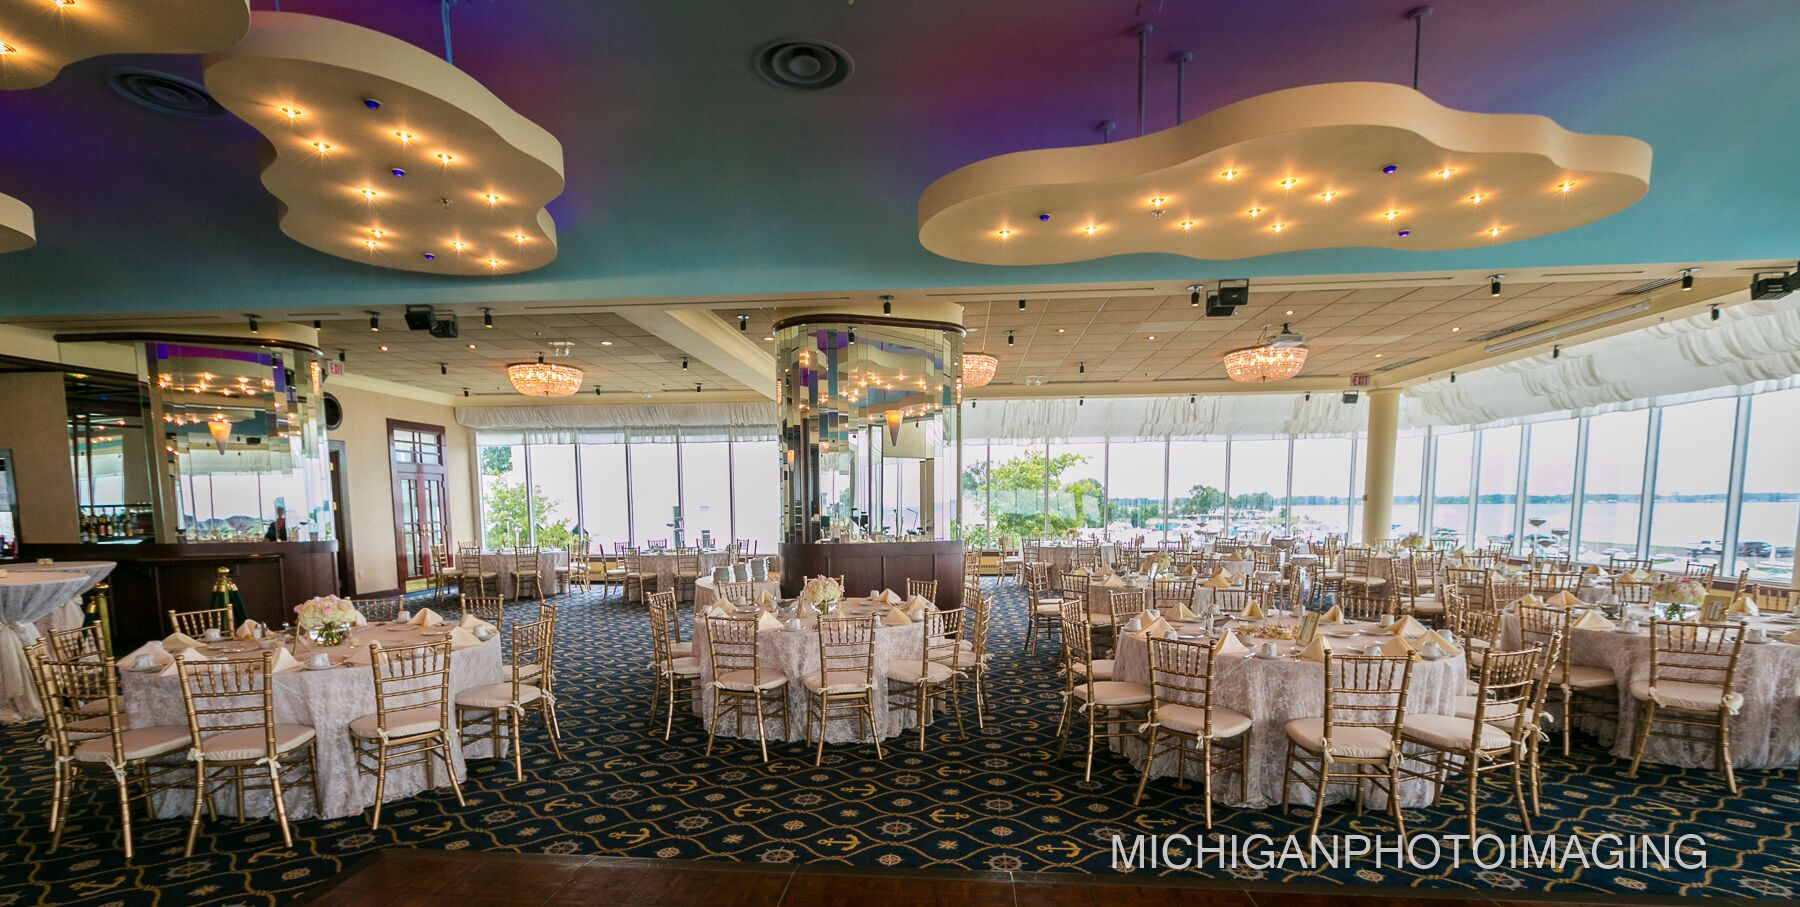 Macray event center   harrison township, mi